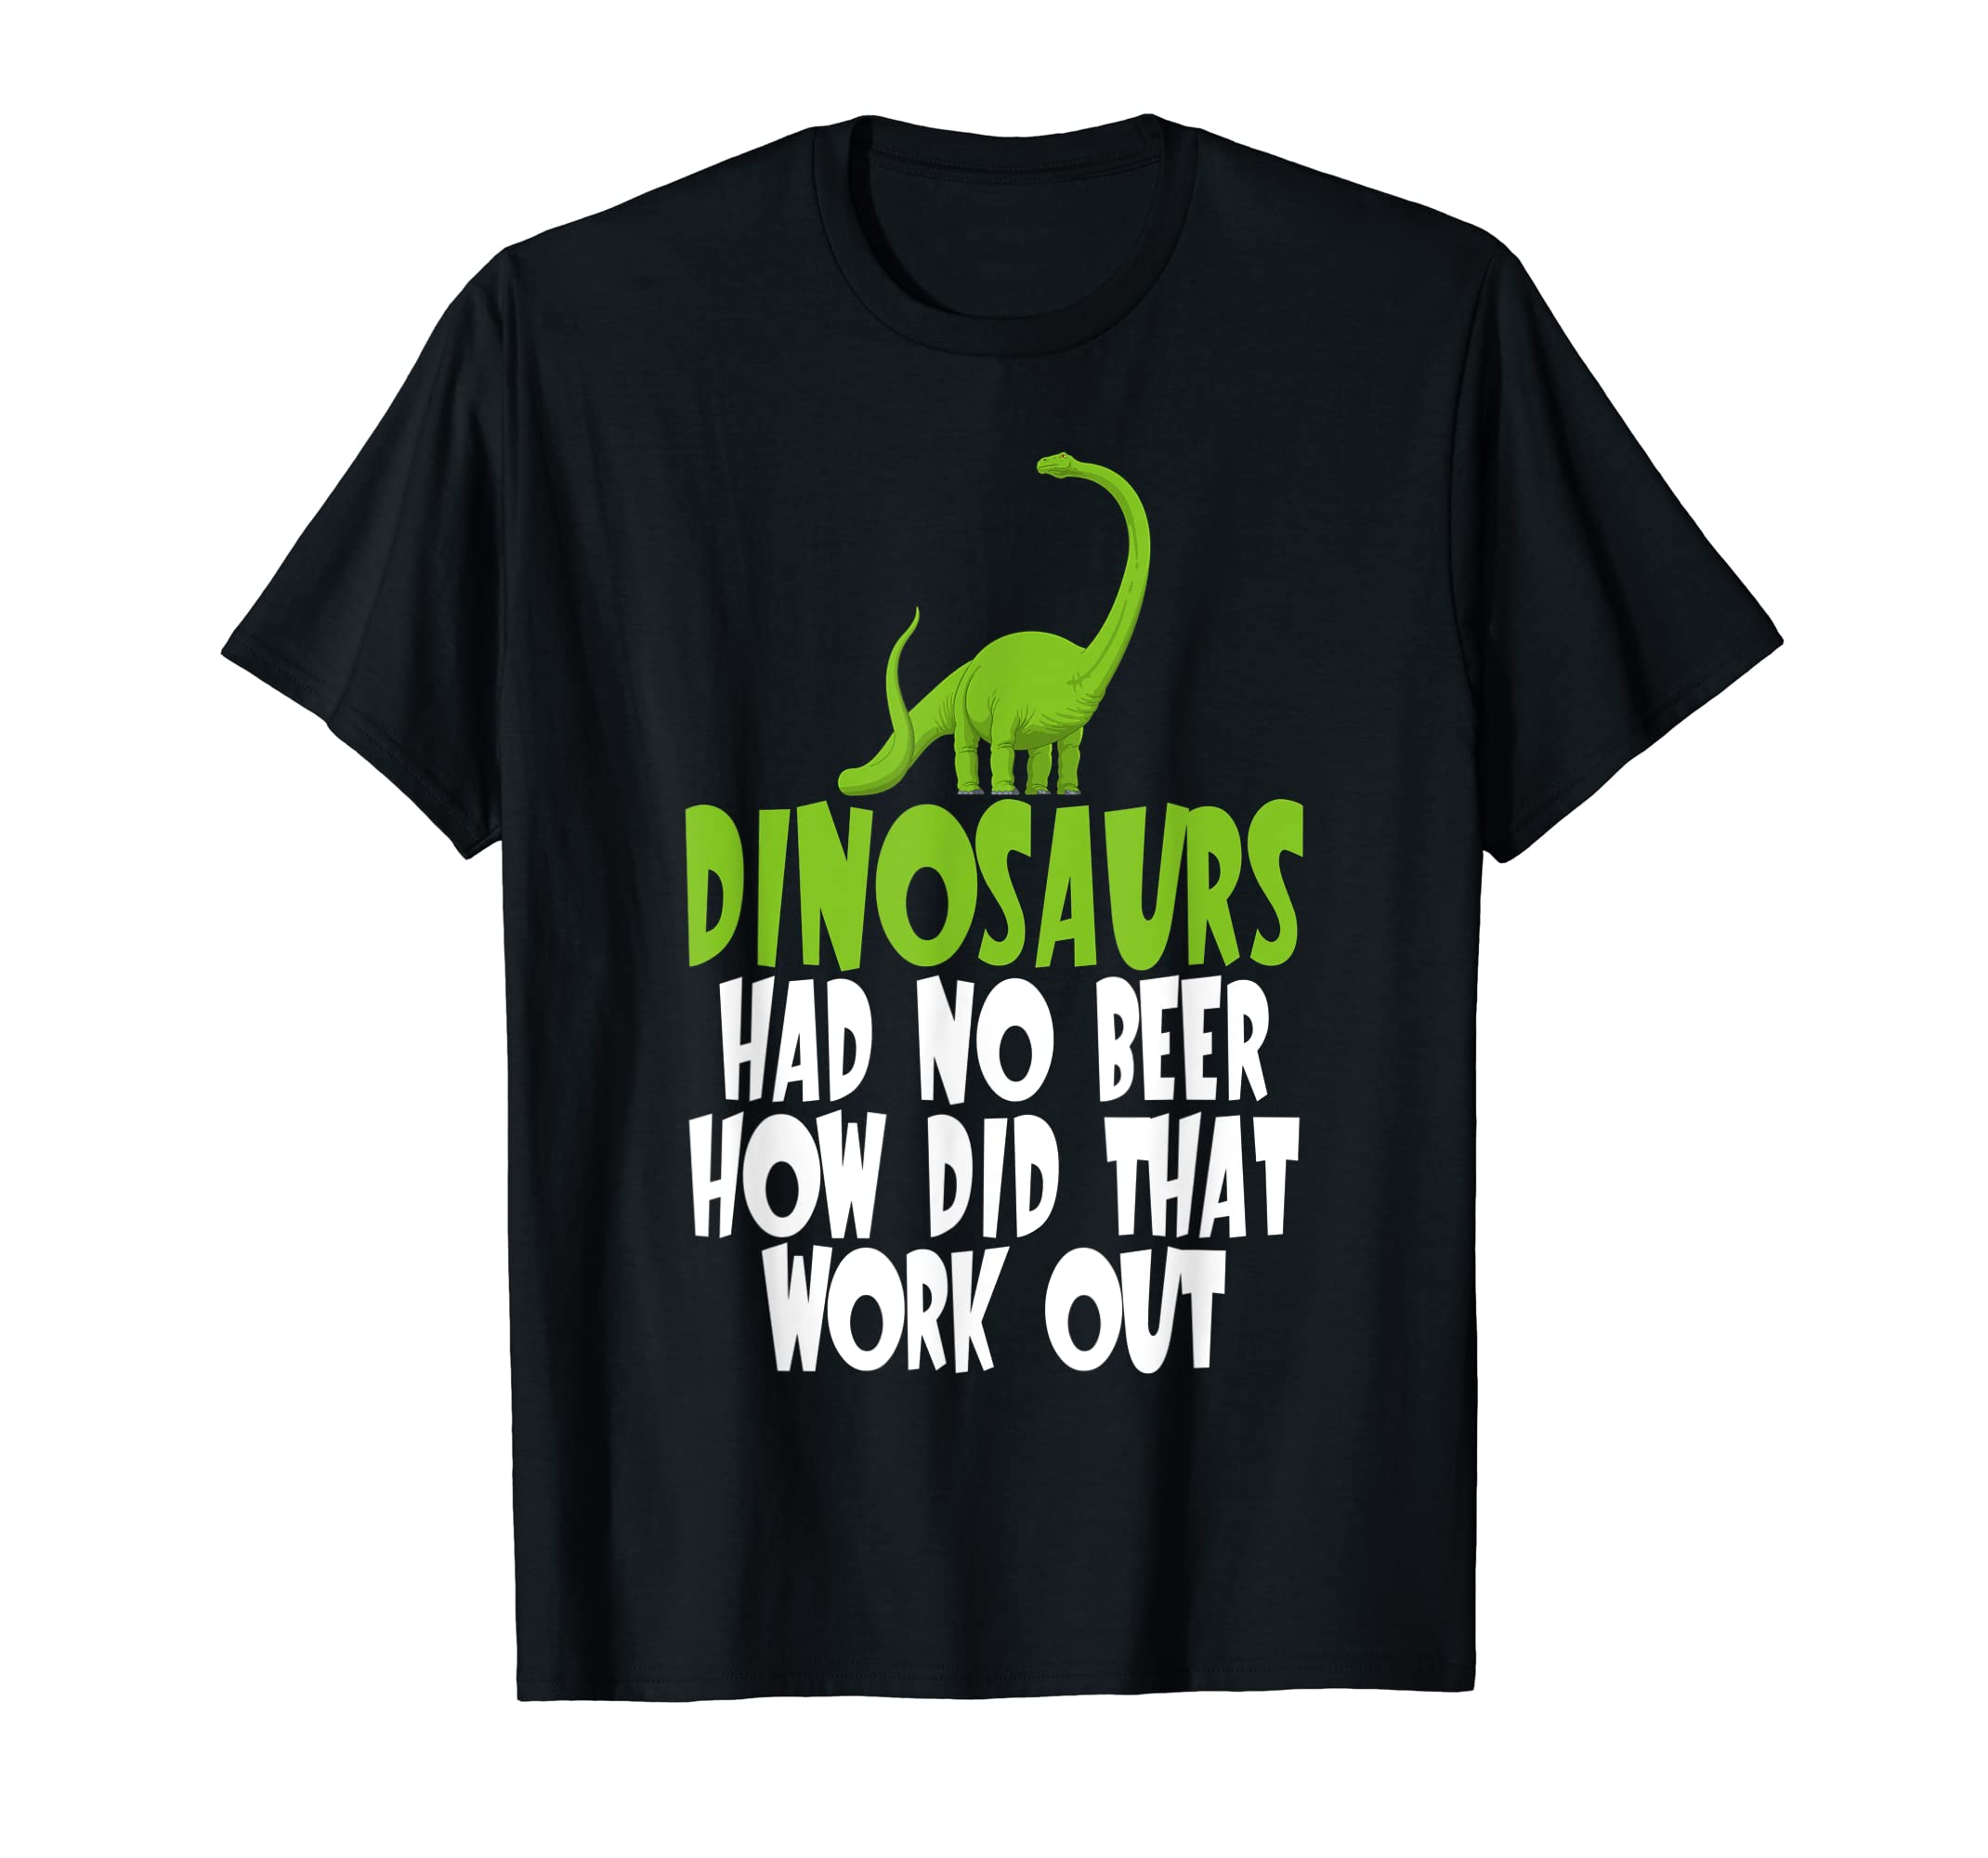 a0709f799 Amazon.com: Dinosaurs Had No Beer How Did That Work Out T-Shirt: Clothing